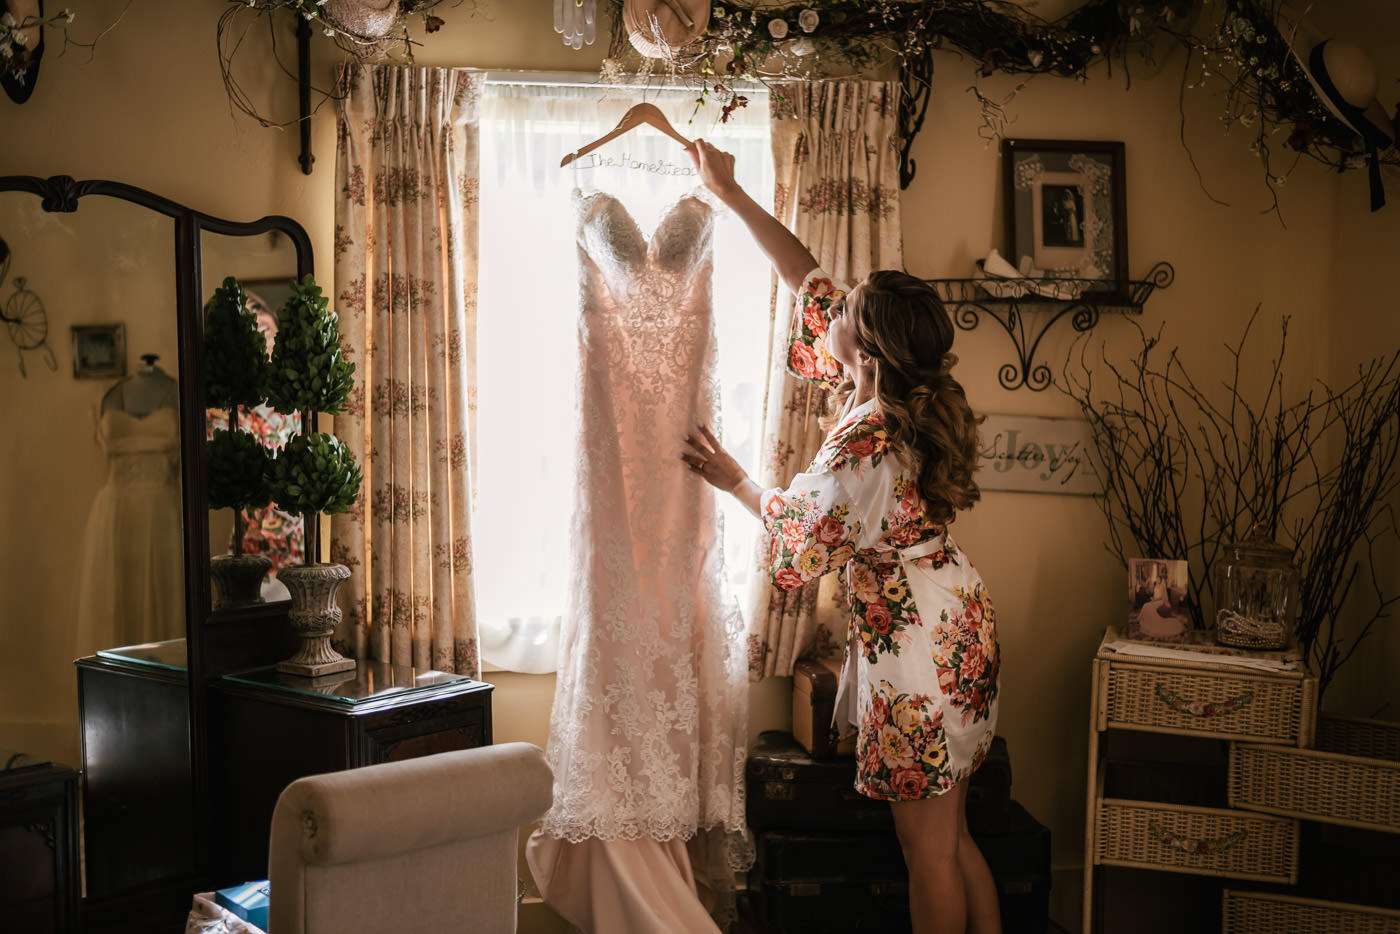 Bride reaches up to grab her wedding dress before the big event.